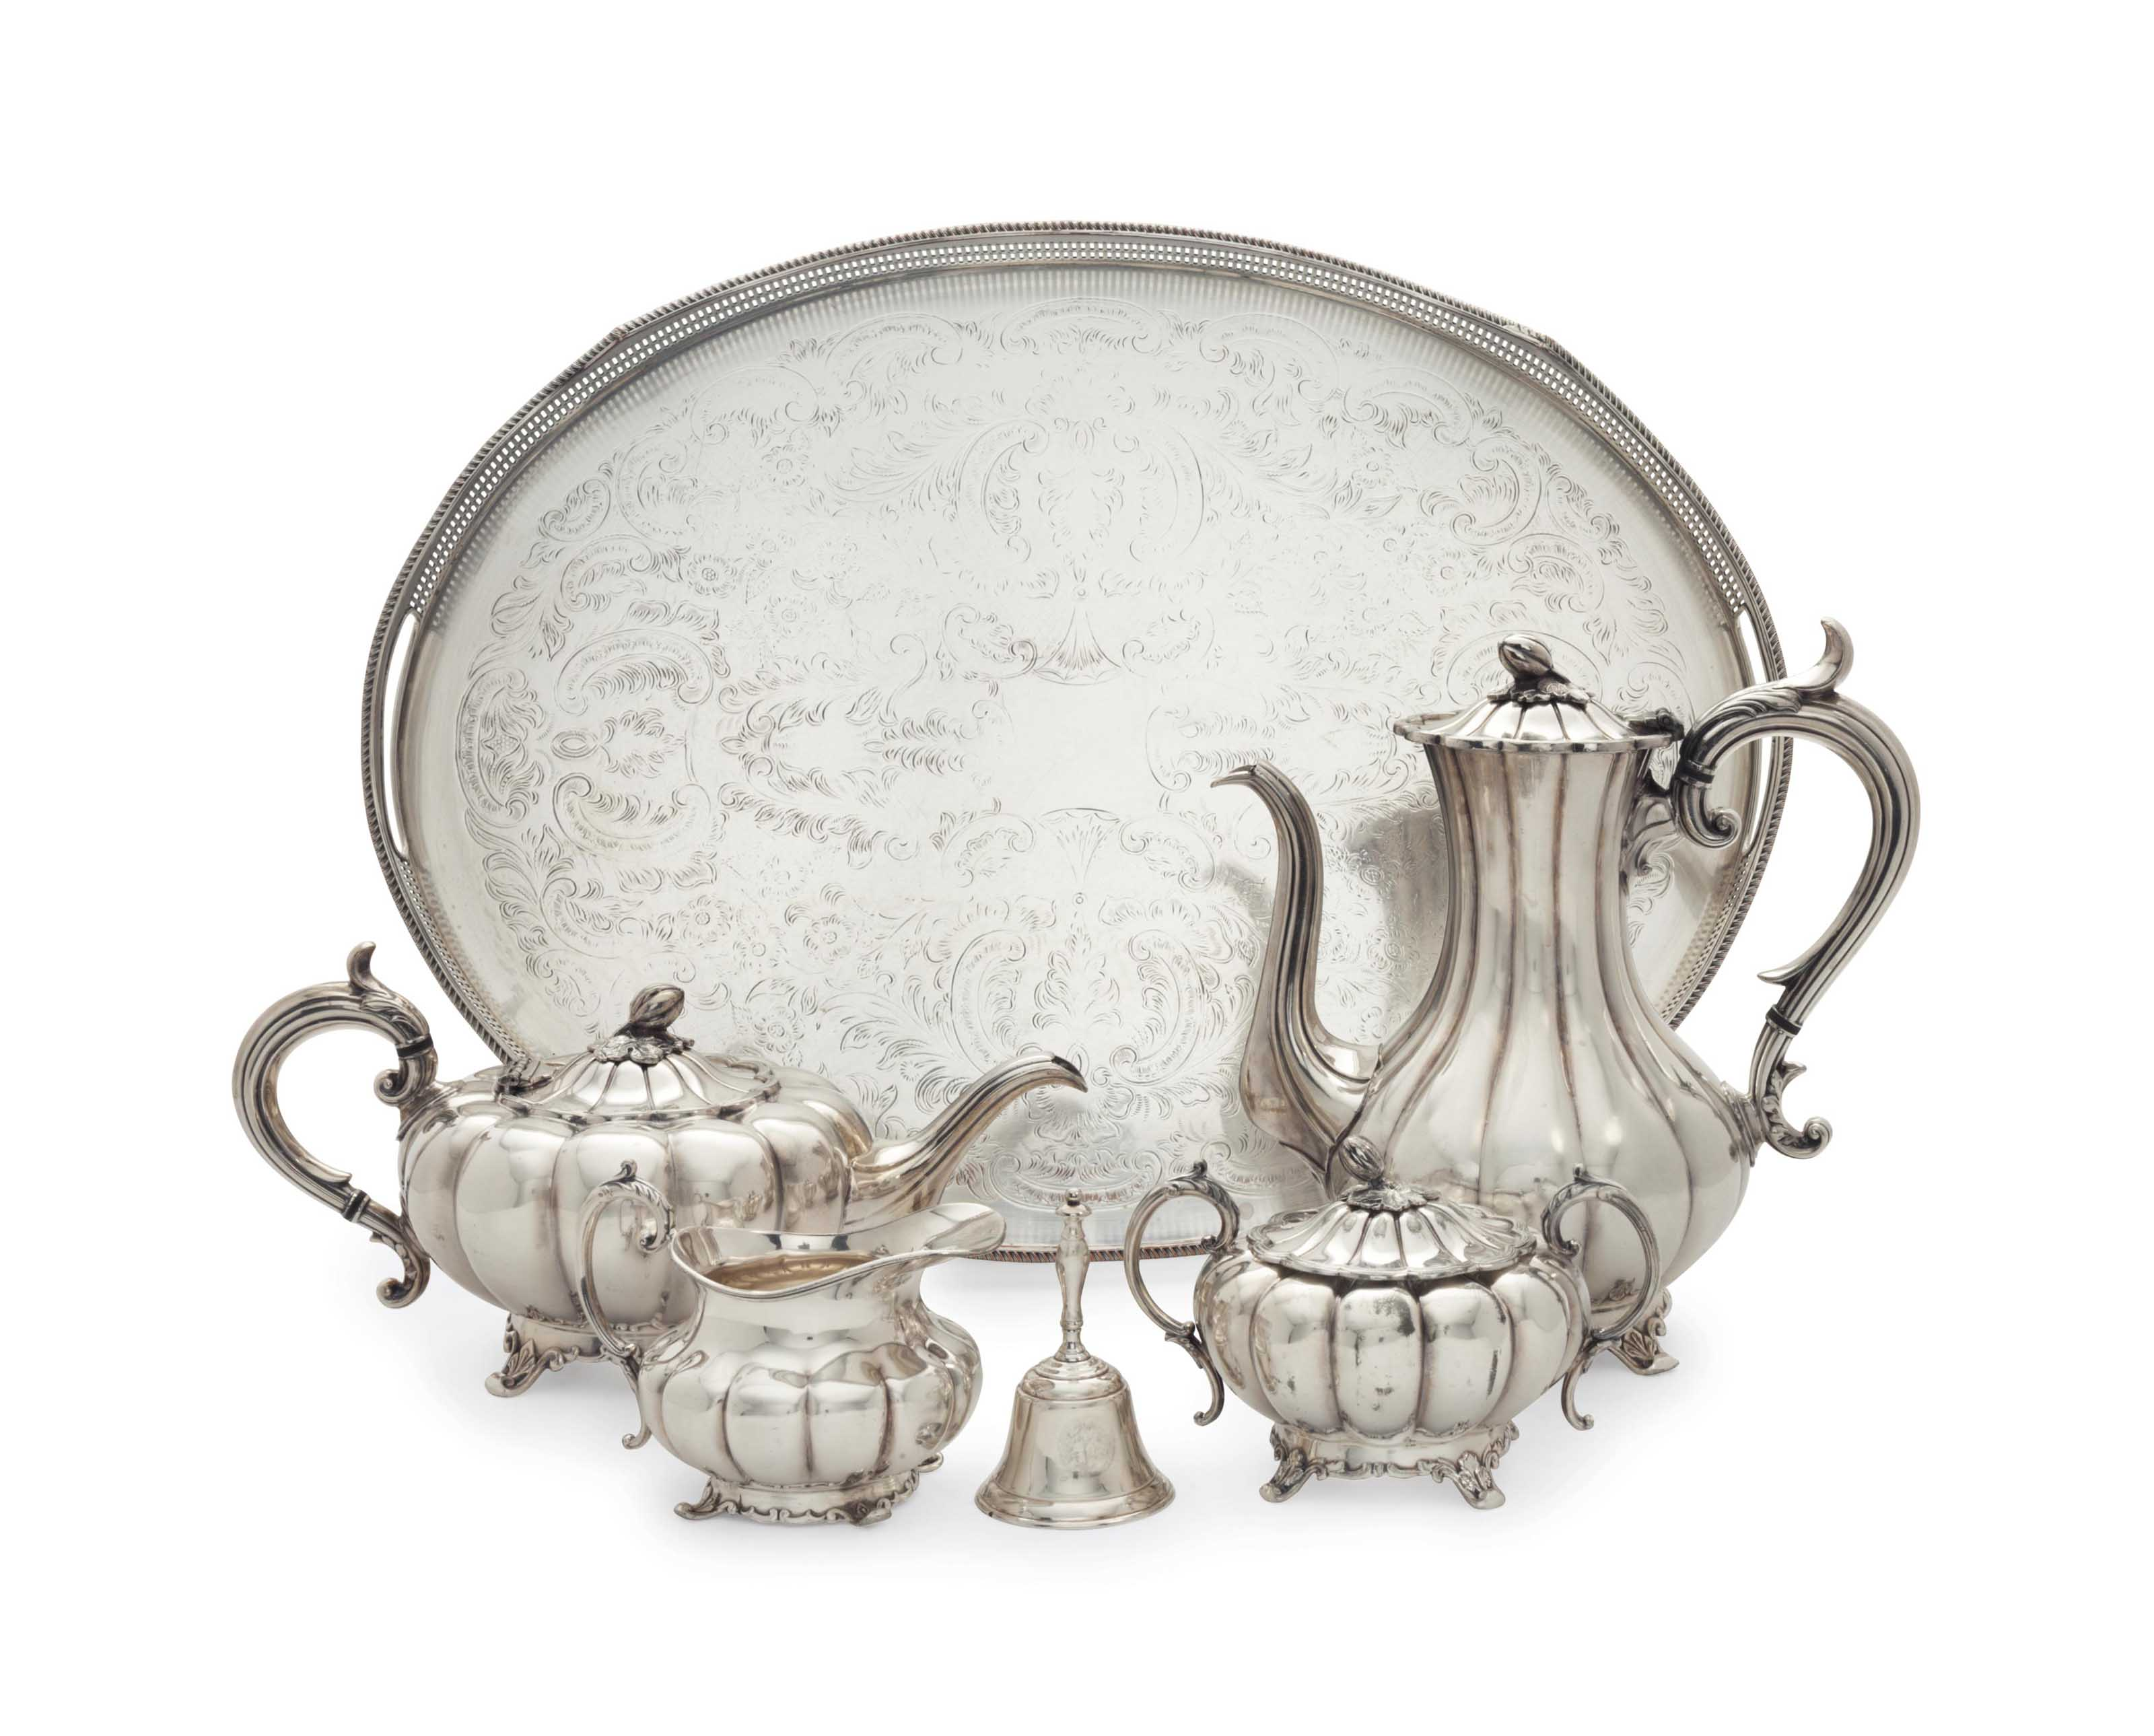 AN ENGLISH SILVER-PLATE FOUR-PIECE TEA AND COFFEE SERVICE, A SILVER-PLATE TRAY AND A TABLE BELL